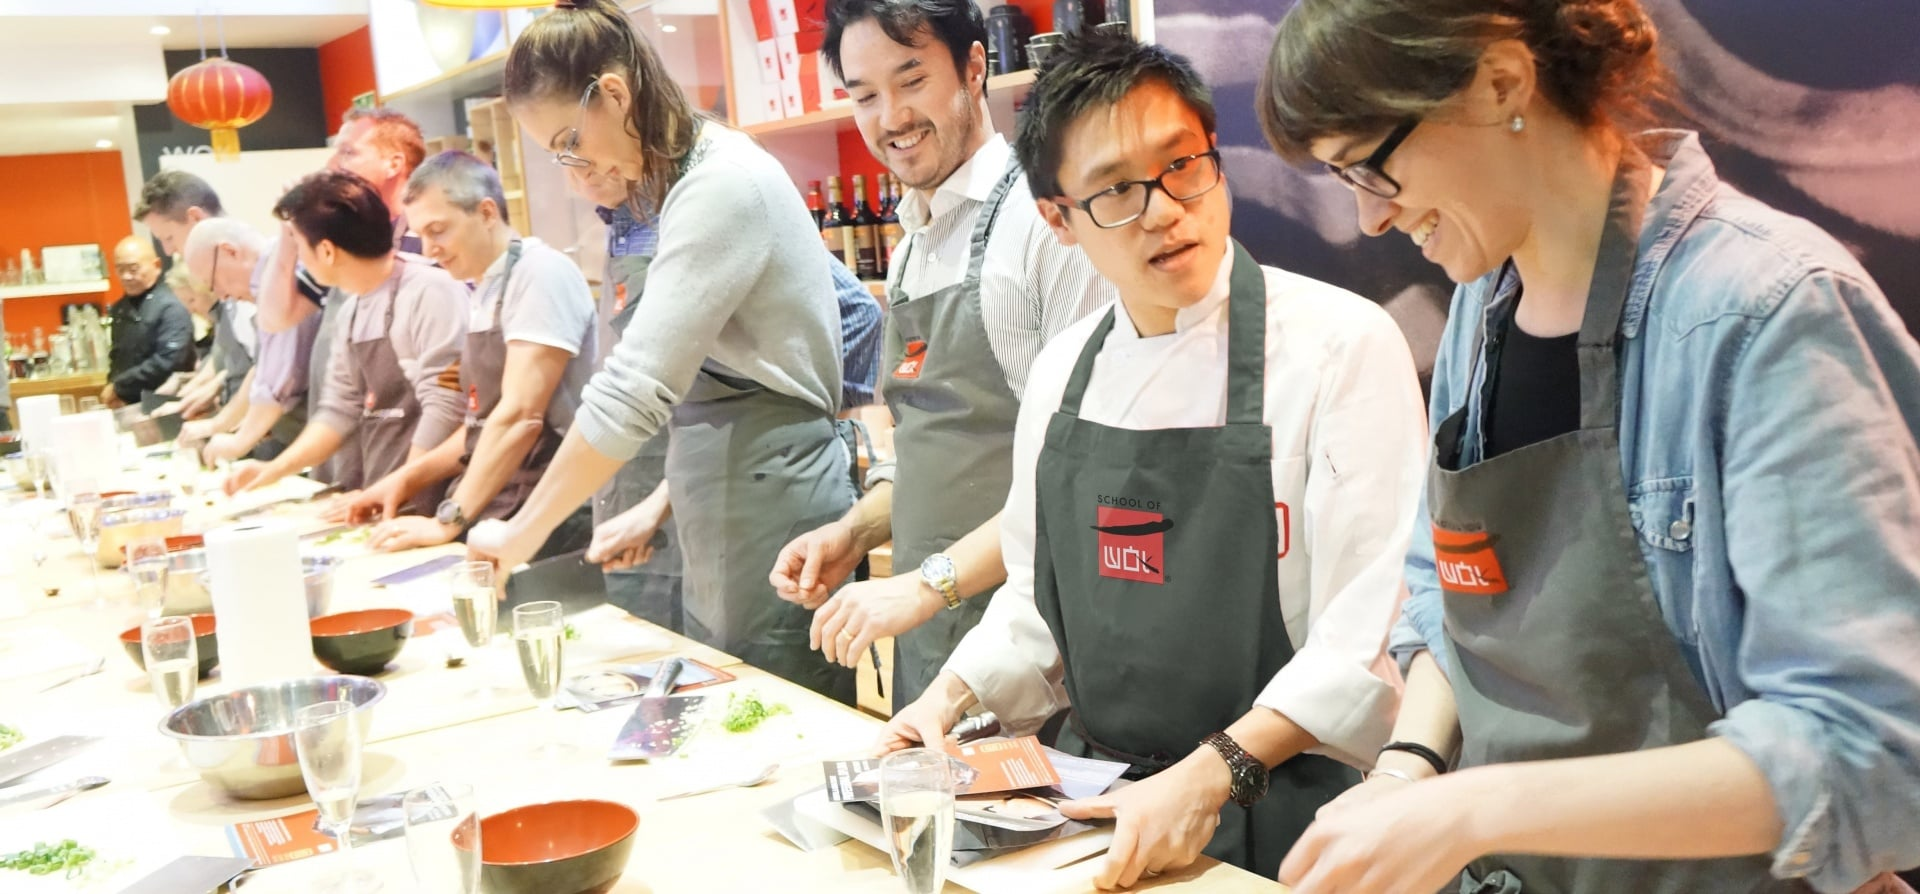 Oriental Seafood and Fish Cooking Class in London-1 Favorite